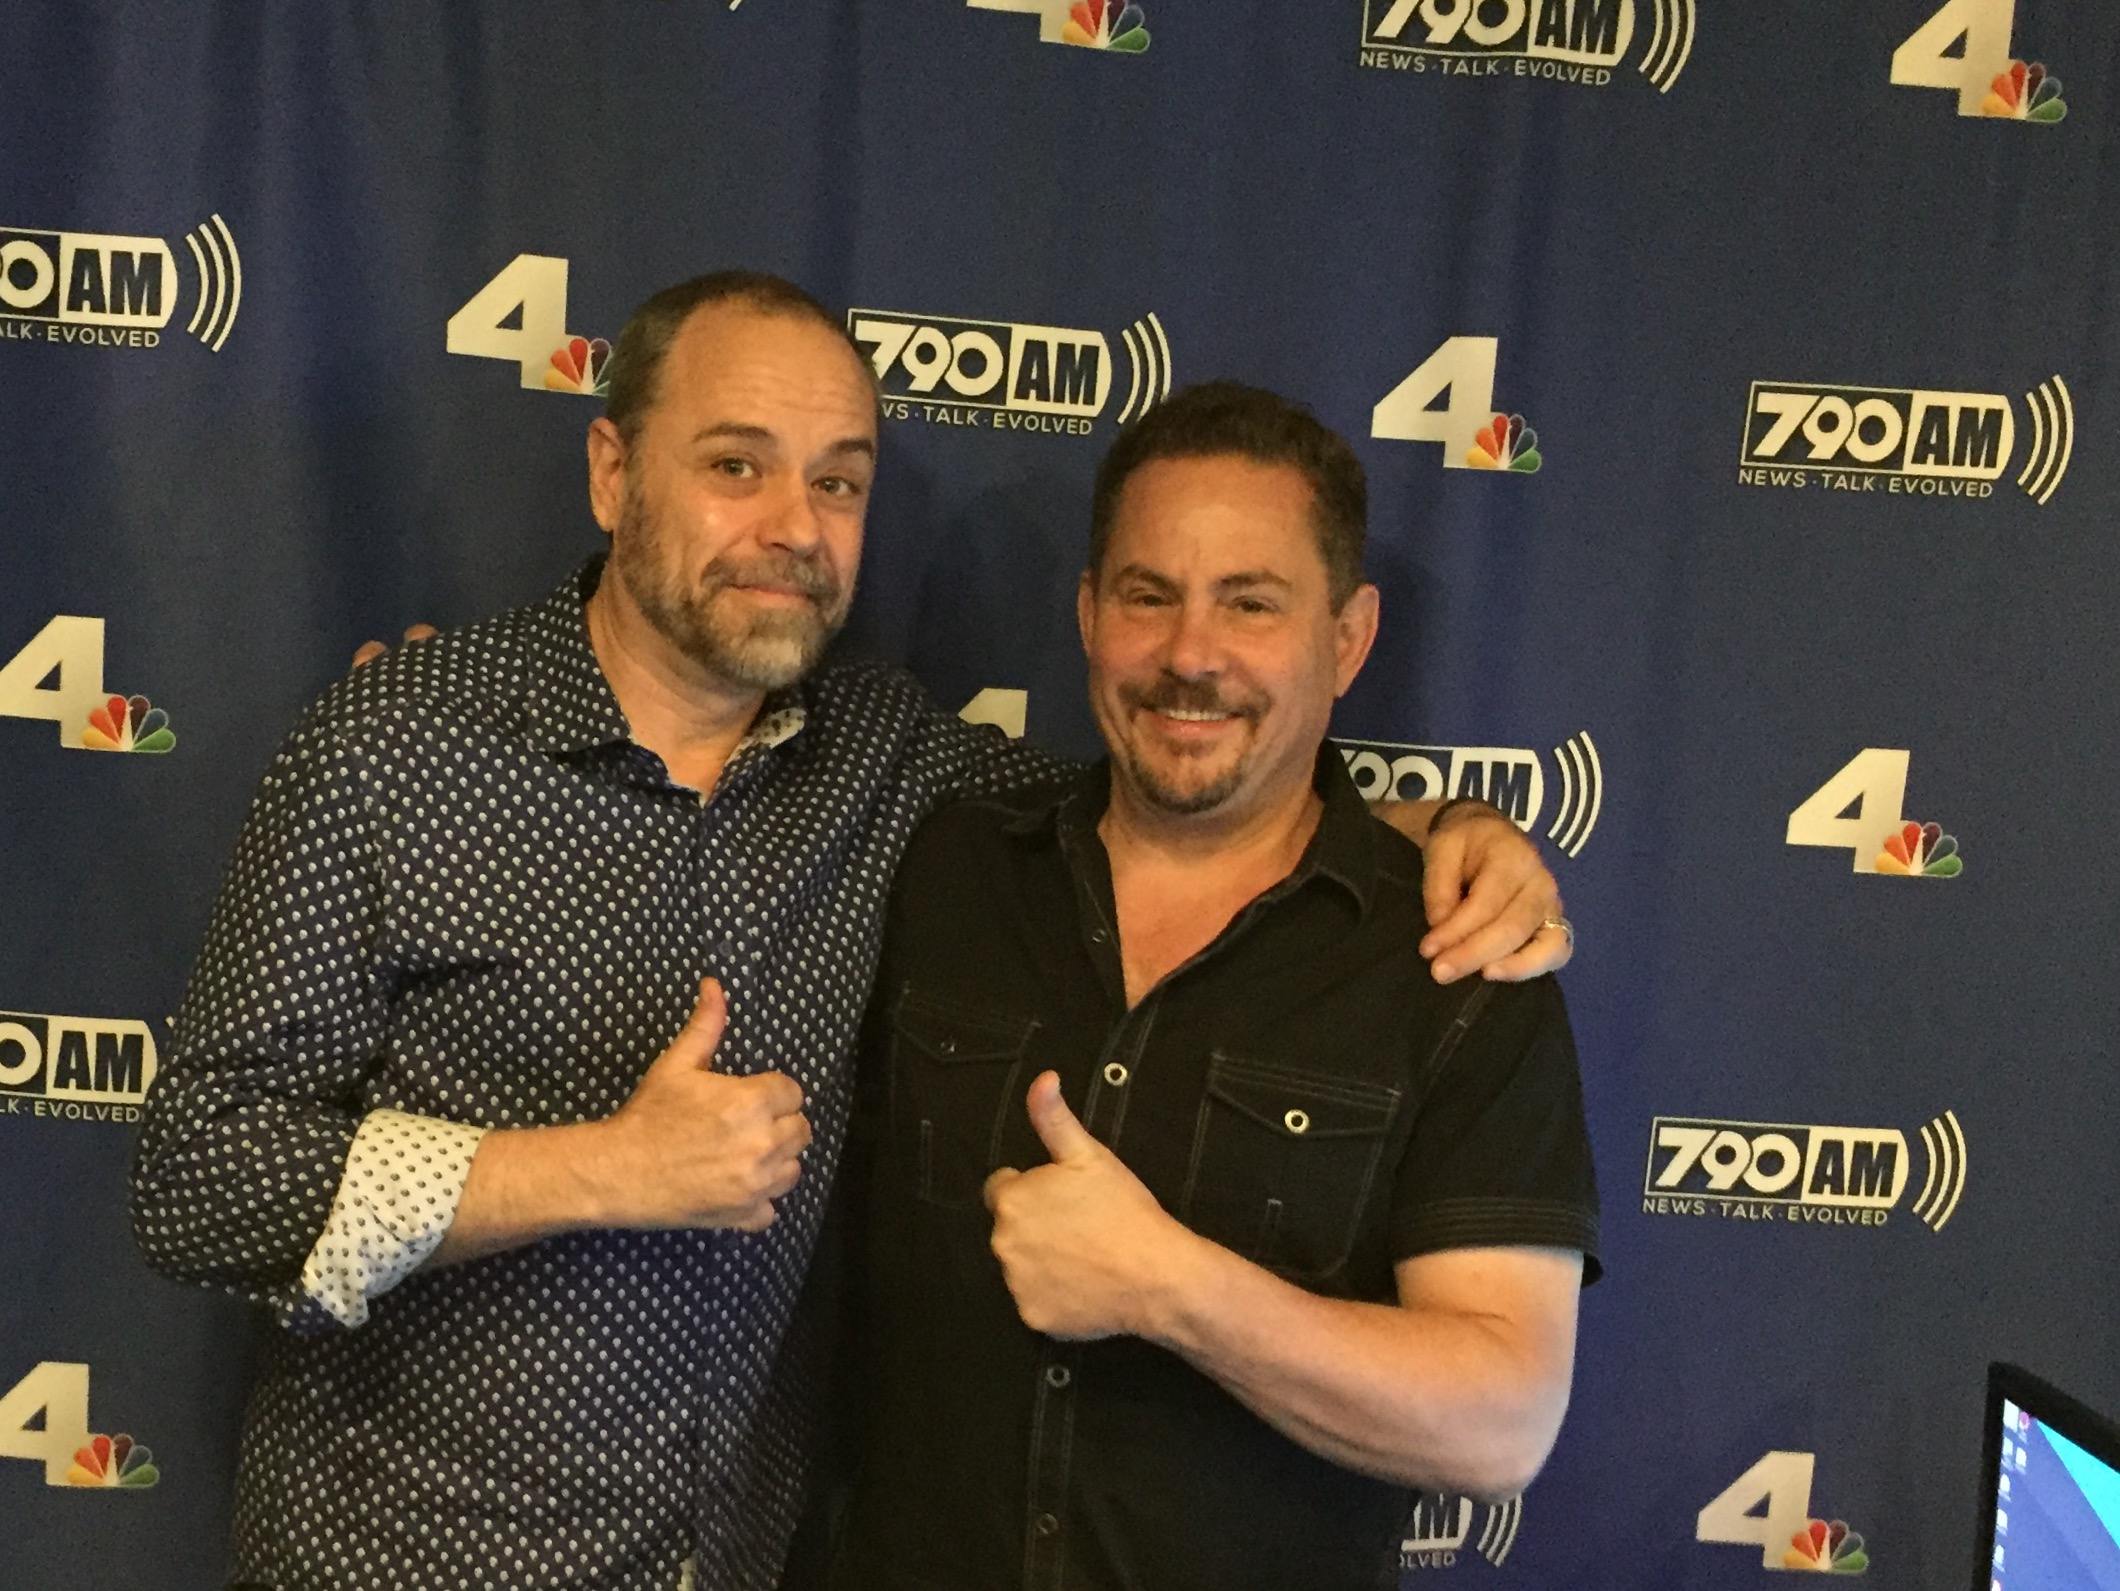 HOWARD AND JAY SAMIT